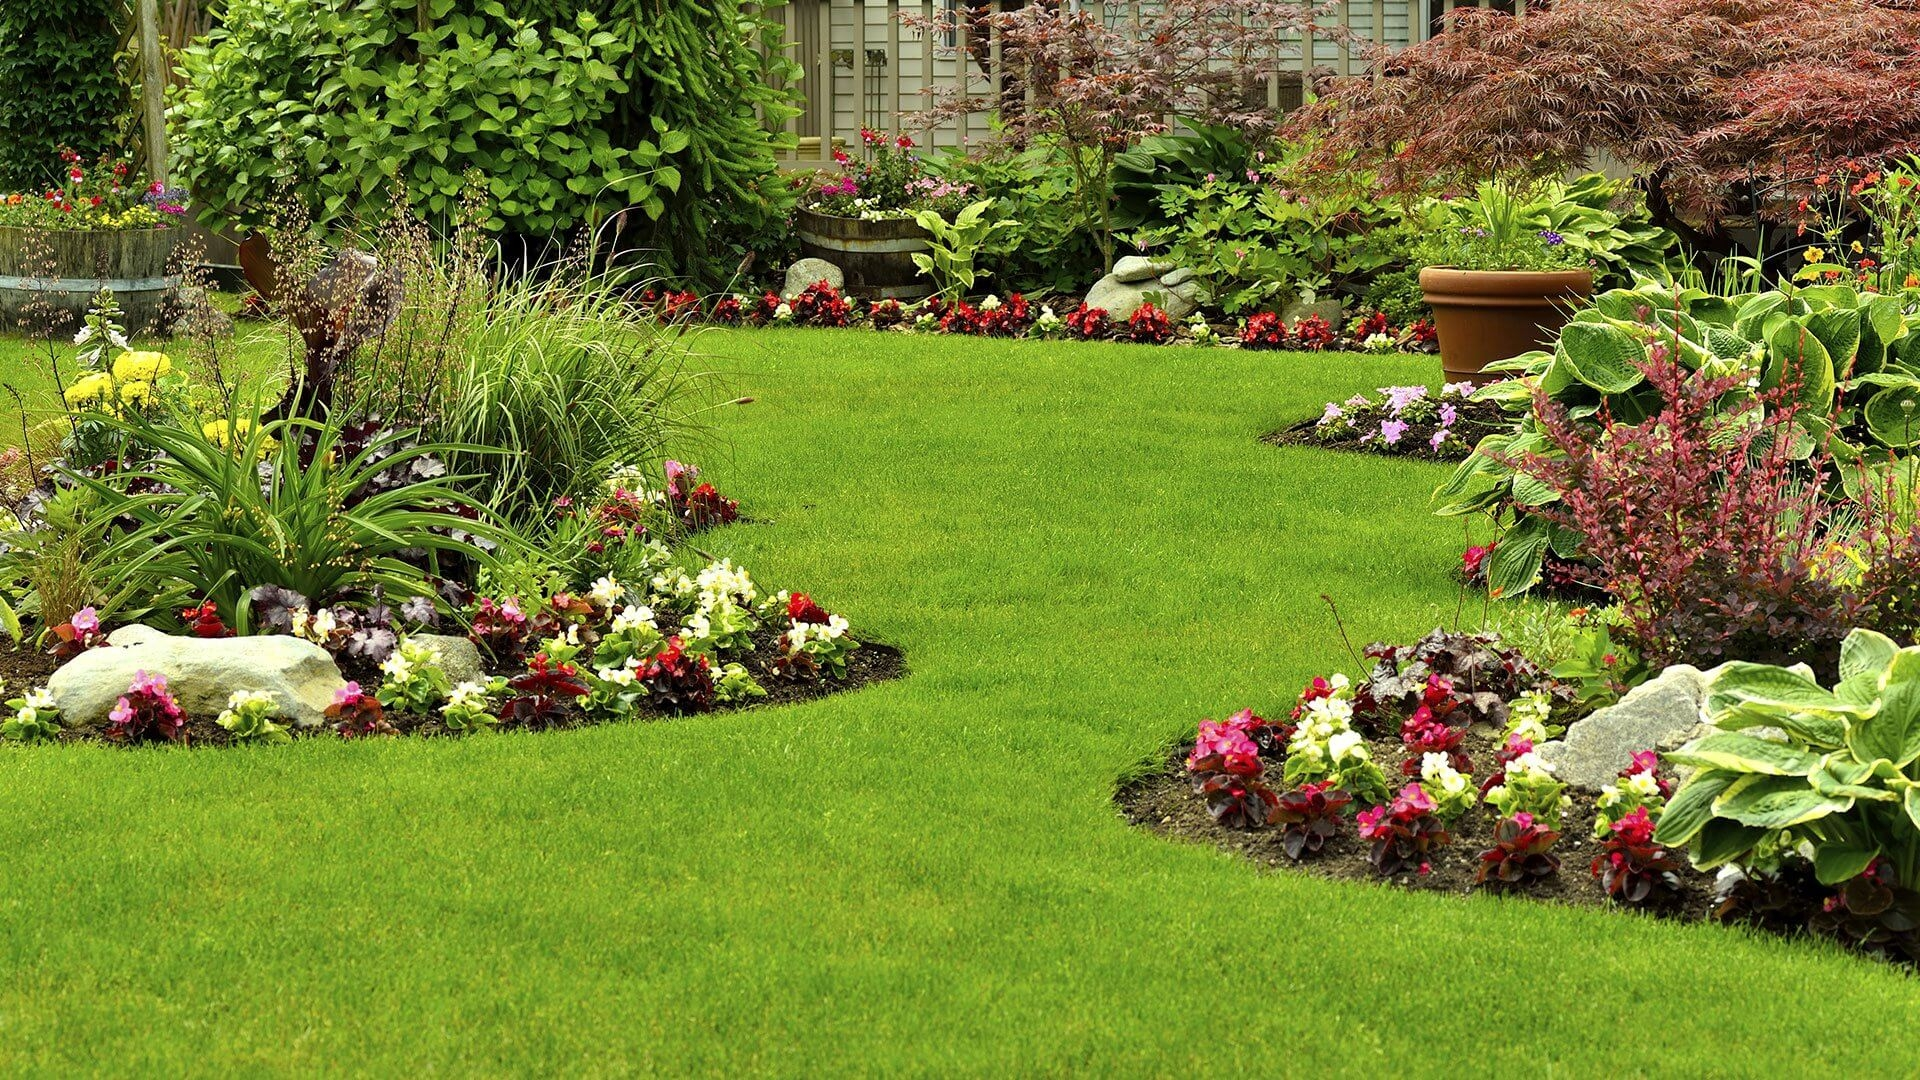 Simple but Highly Effective Lawn Care Tips for Spring